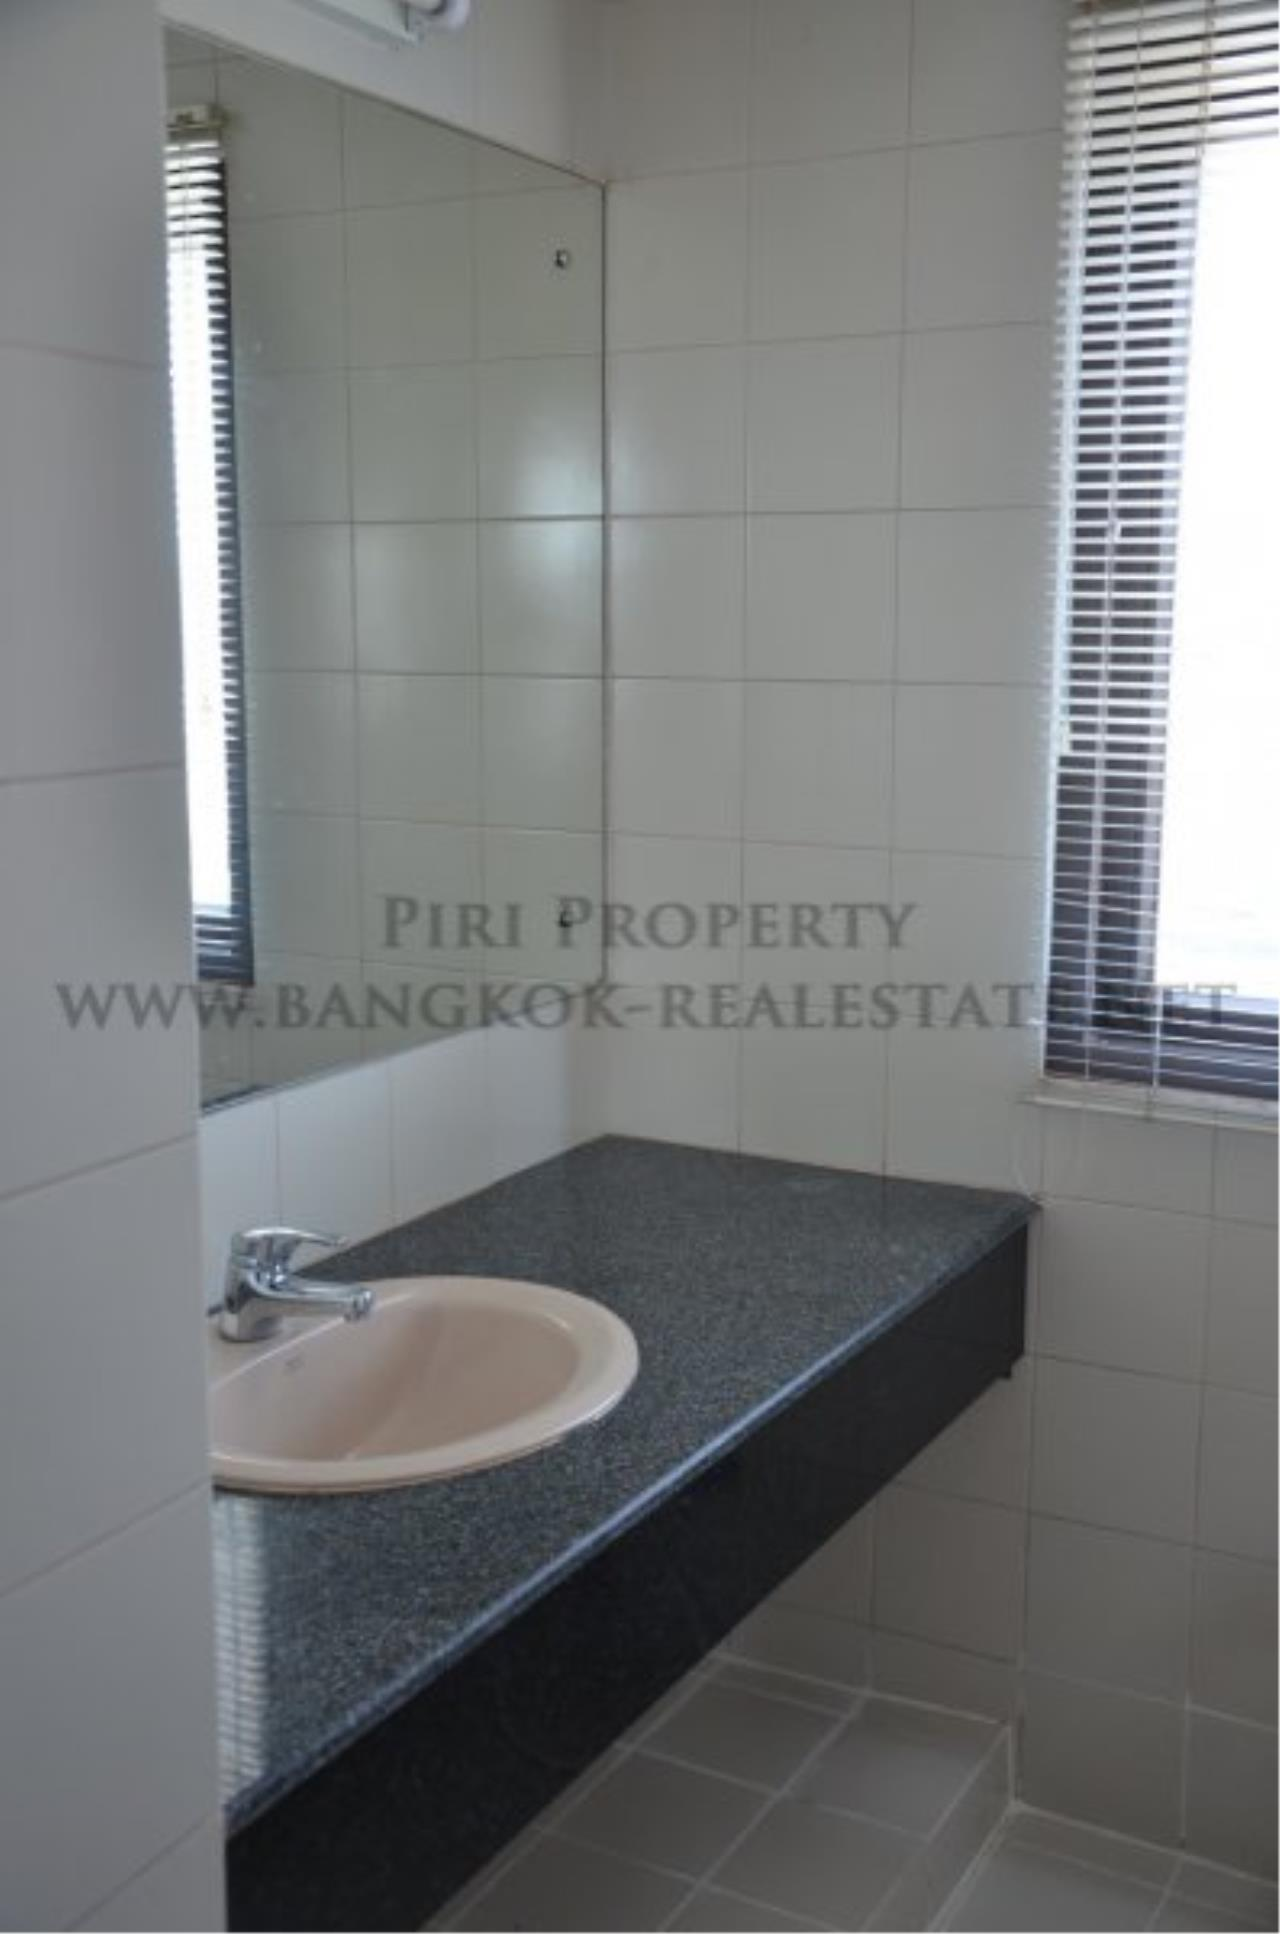 Piri Property Agency's Spacious 3 Bedroom Condo in Ekkamai - 128 SQM for 50K - Top View Tower - 30th Floor 8